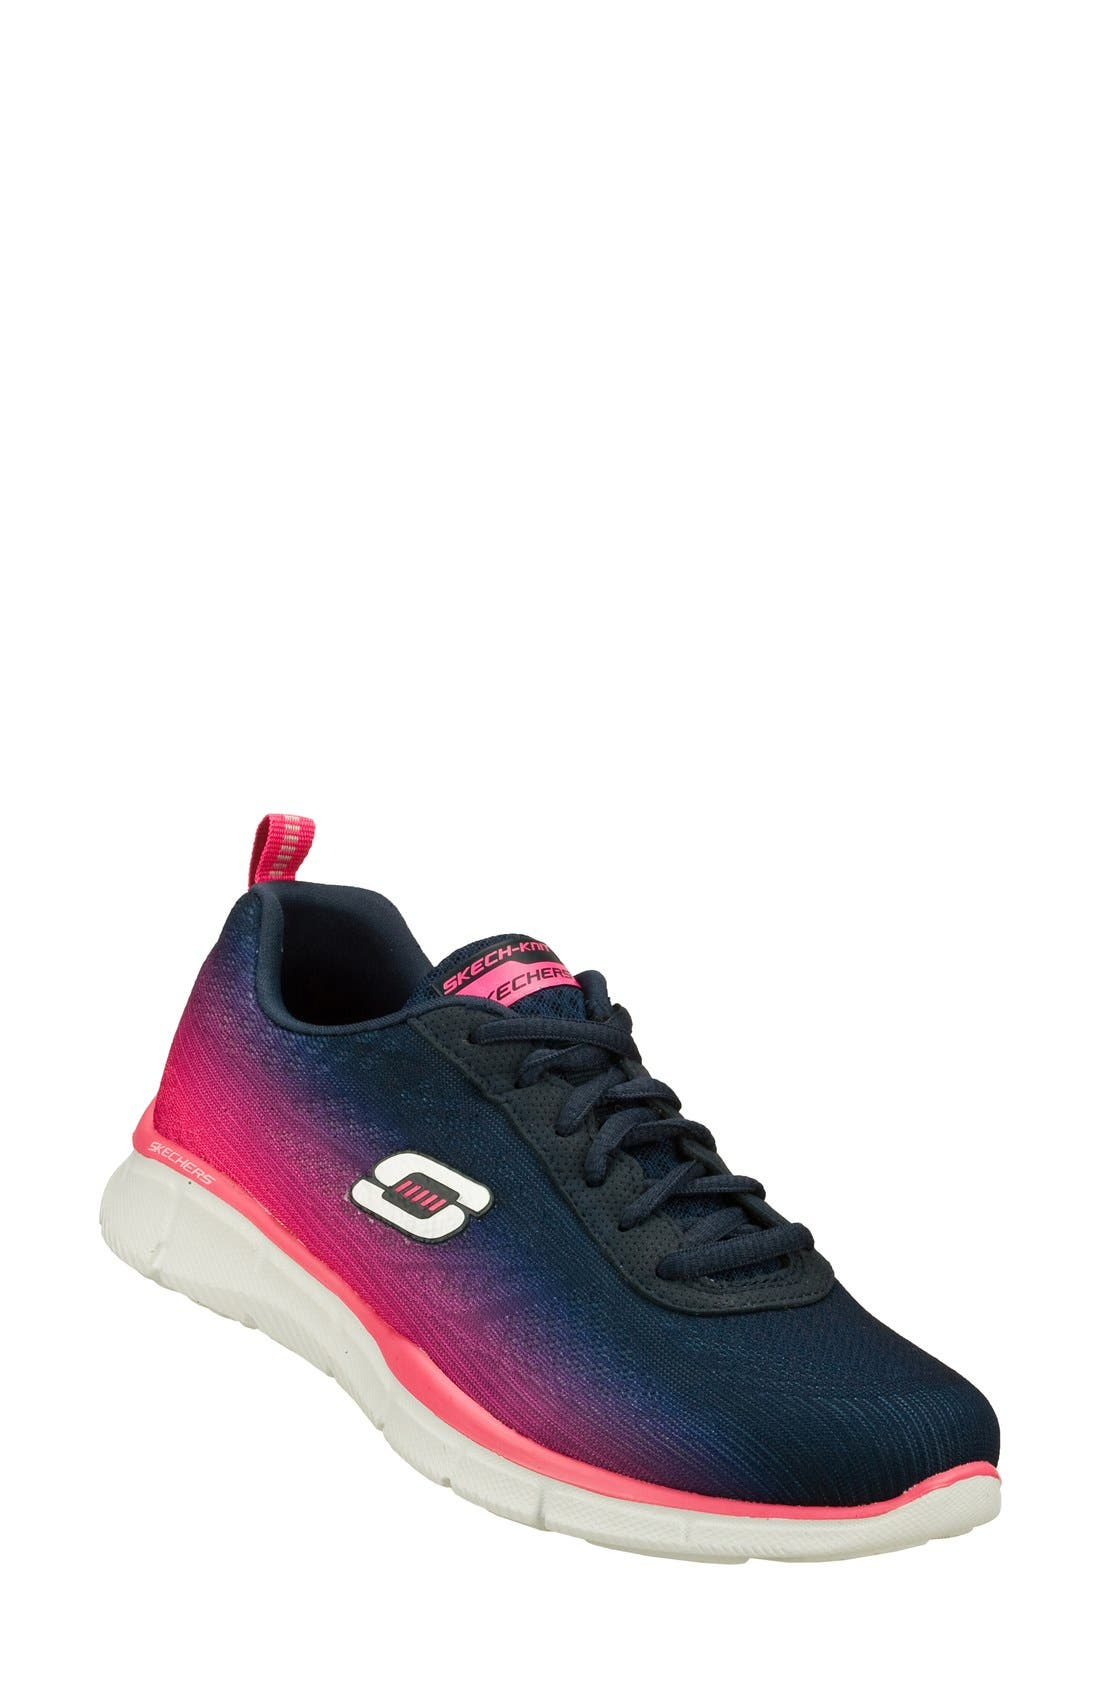 Alternate Image 1 Selected - SKECHERS 'Perfect Pair' Walking Shoe (Women)